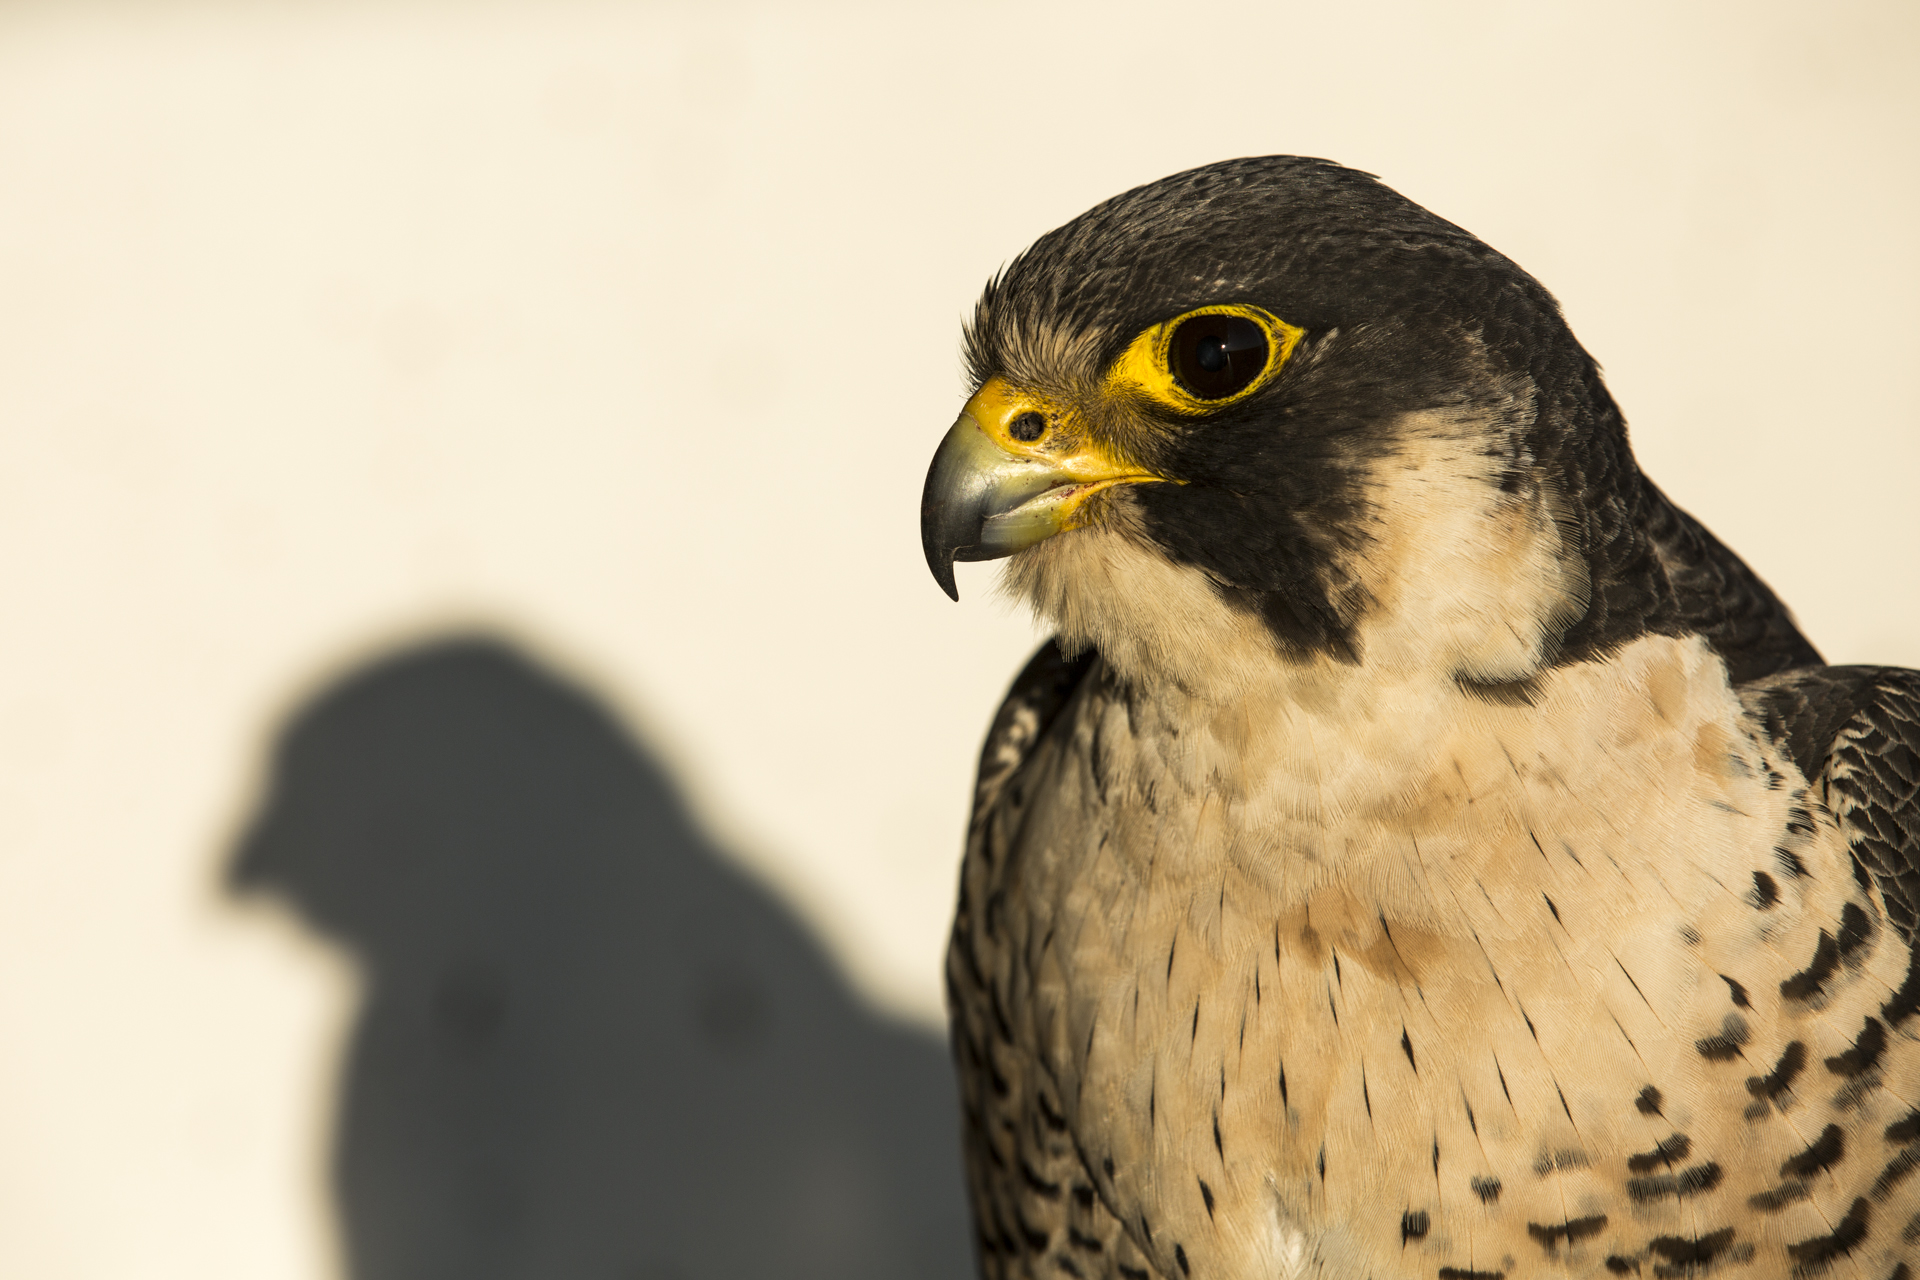 Peregrine falcons are highly proficient predators, built for killing prey with incredible eyesight, razor sharp talons and beaks.